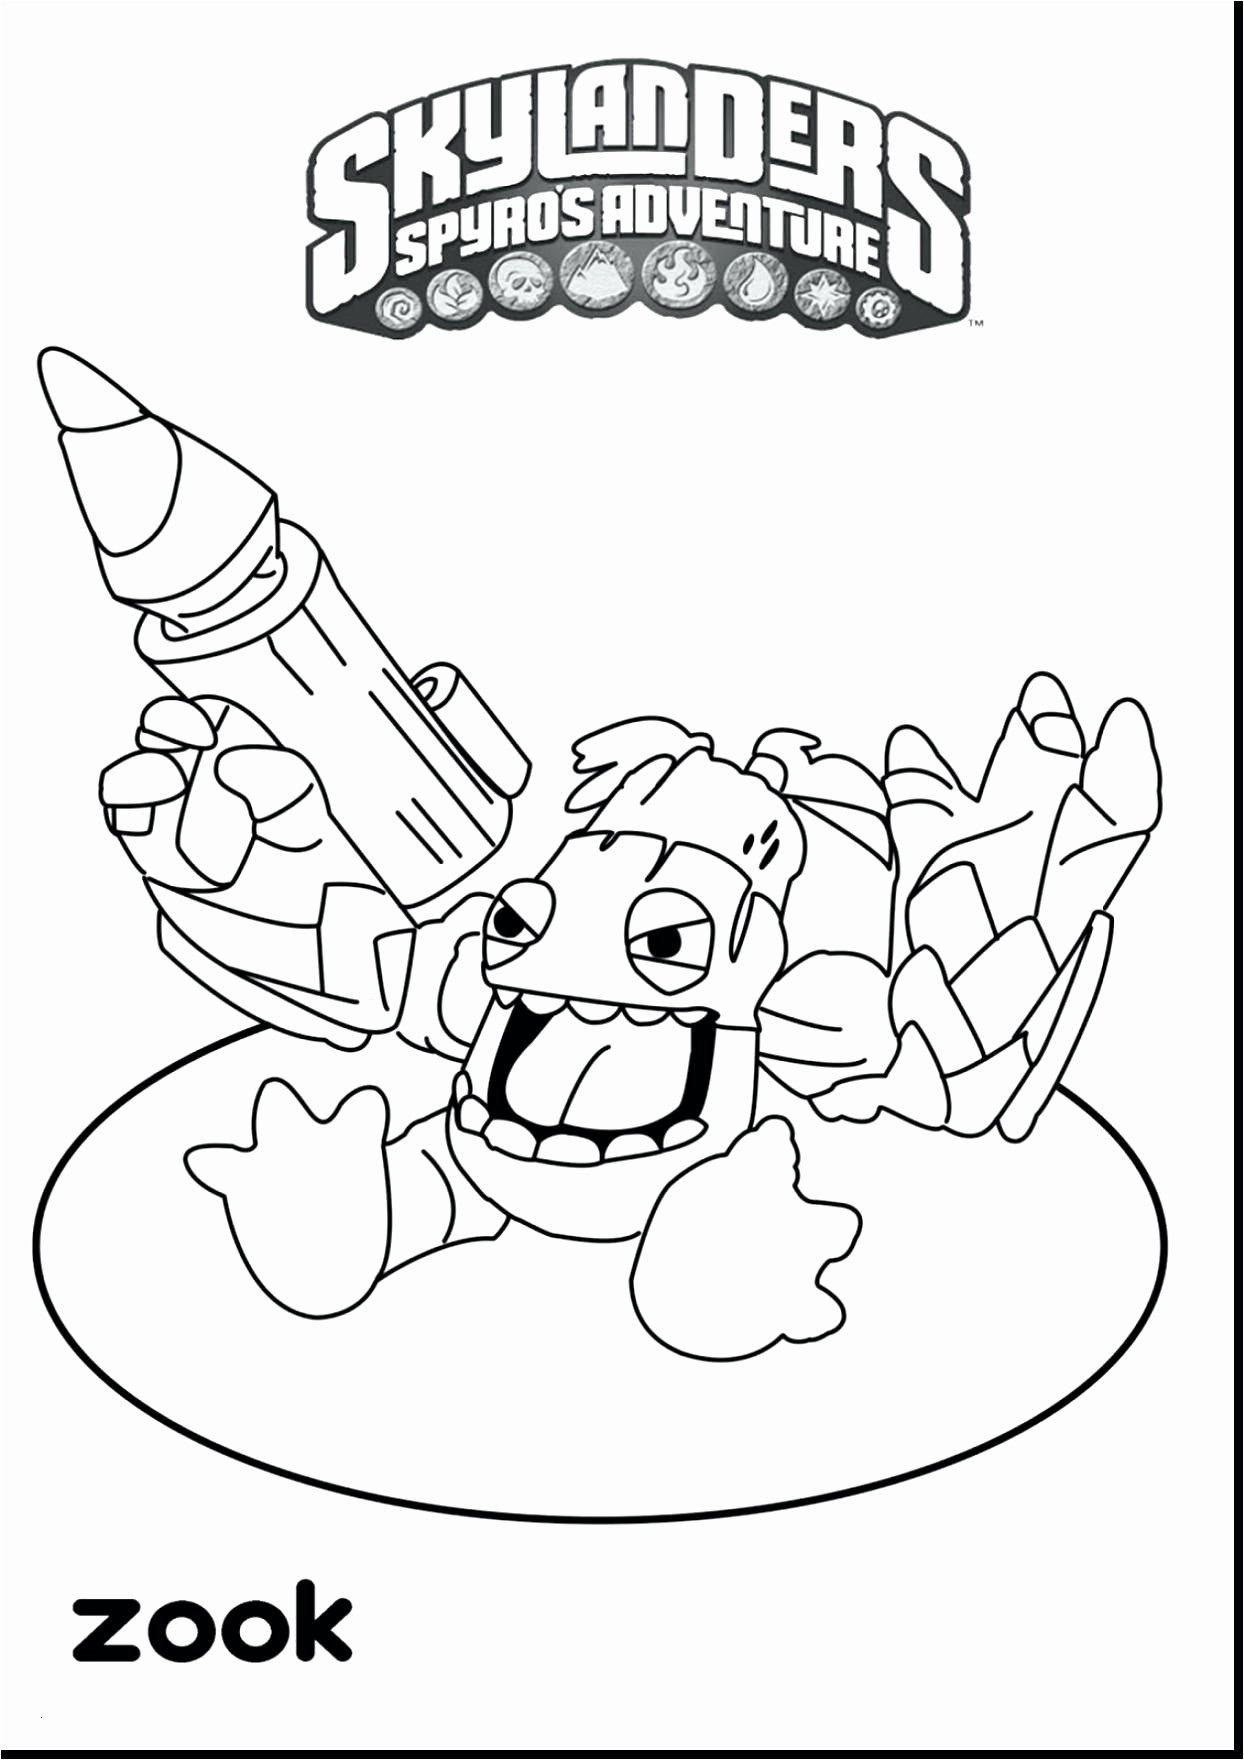 29 Personalized Coloring Pages Download Coloring Sheets